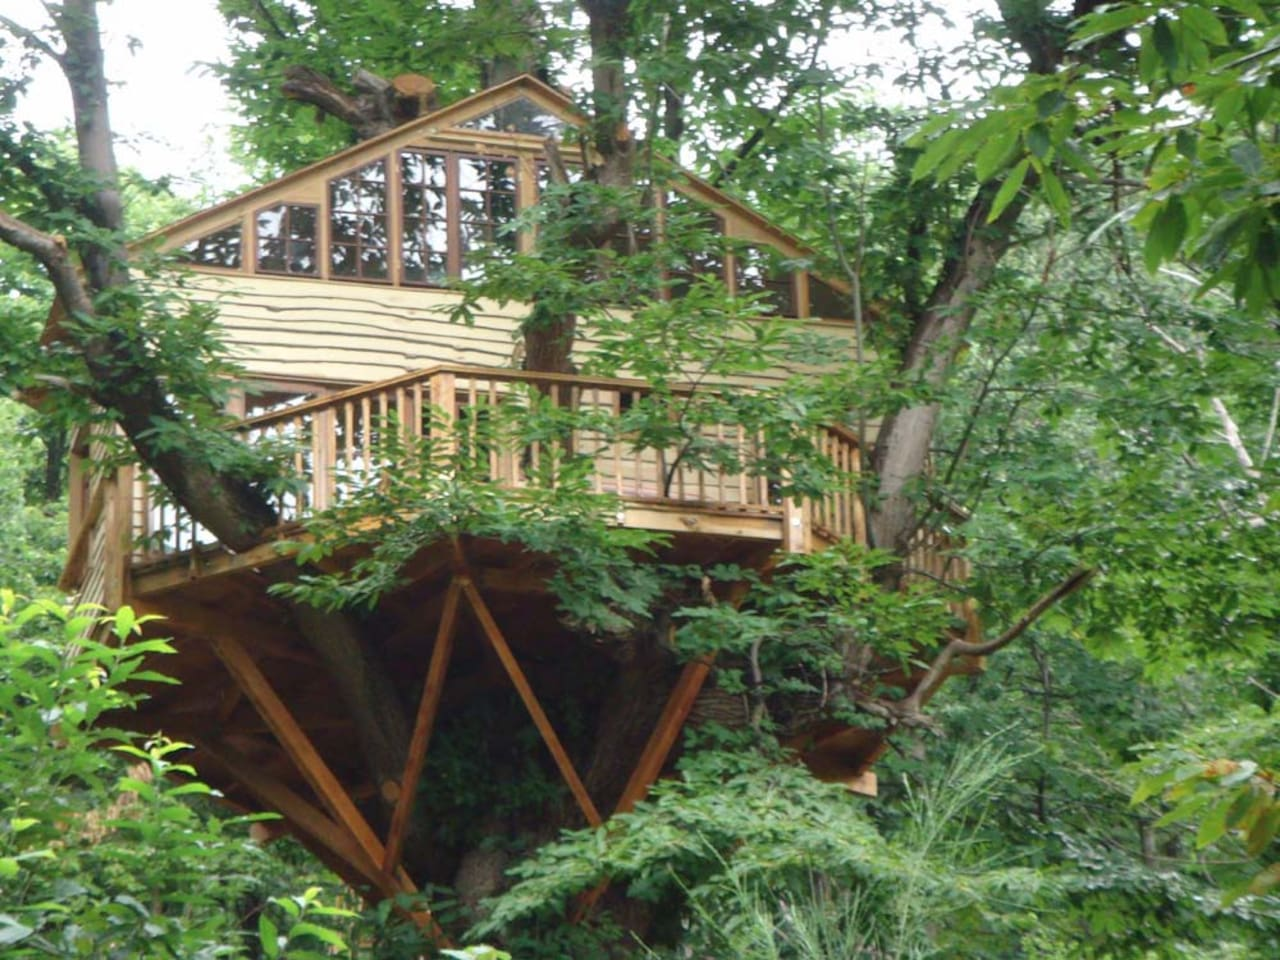 Main view of the treehouse